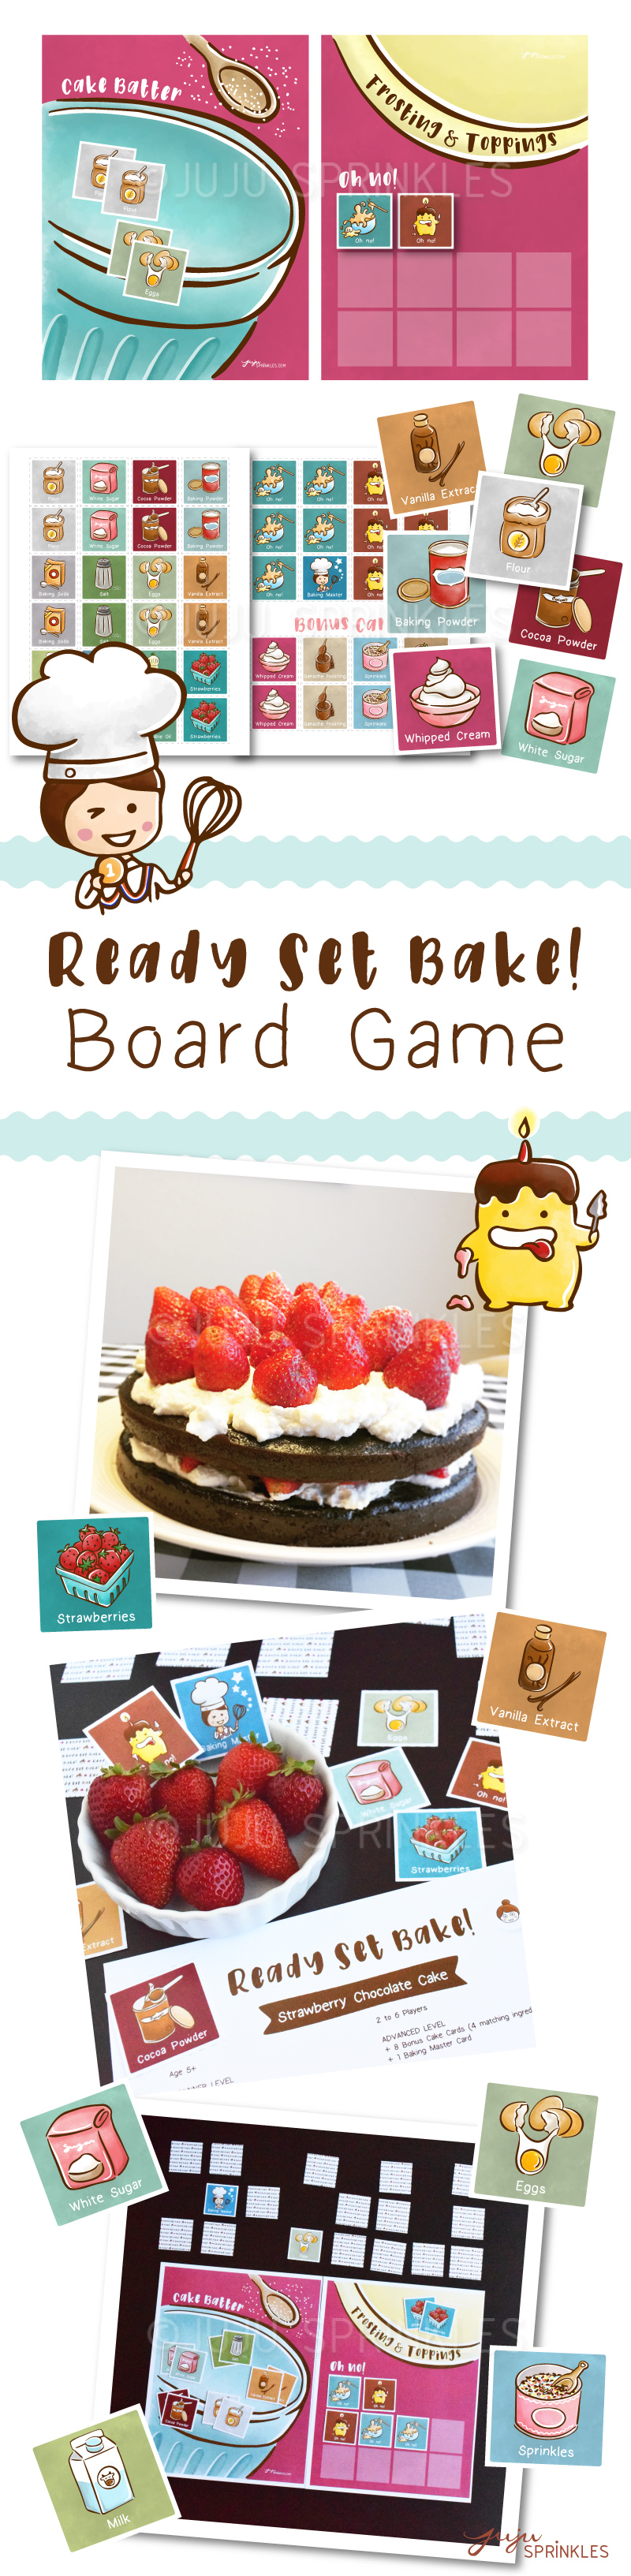 The Great Bake Off Board Game Style Juju Sprinkles